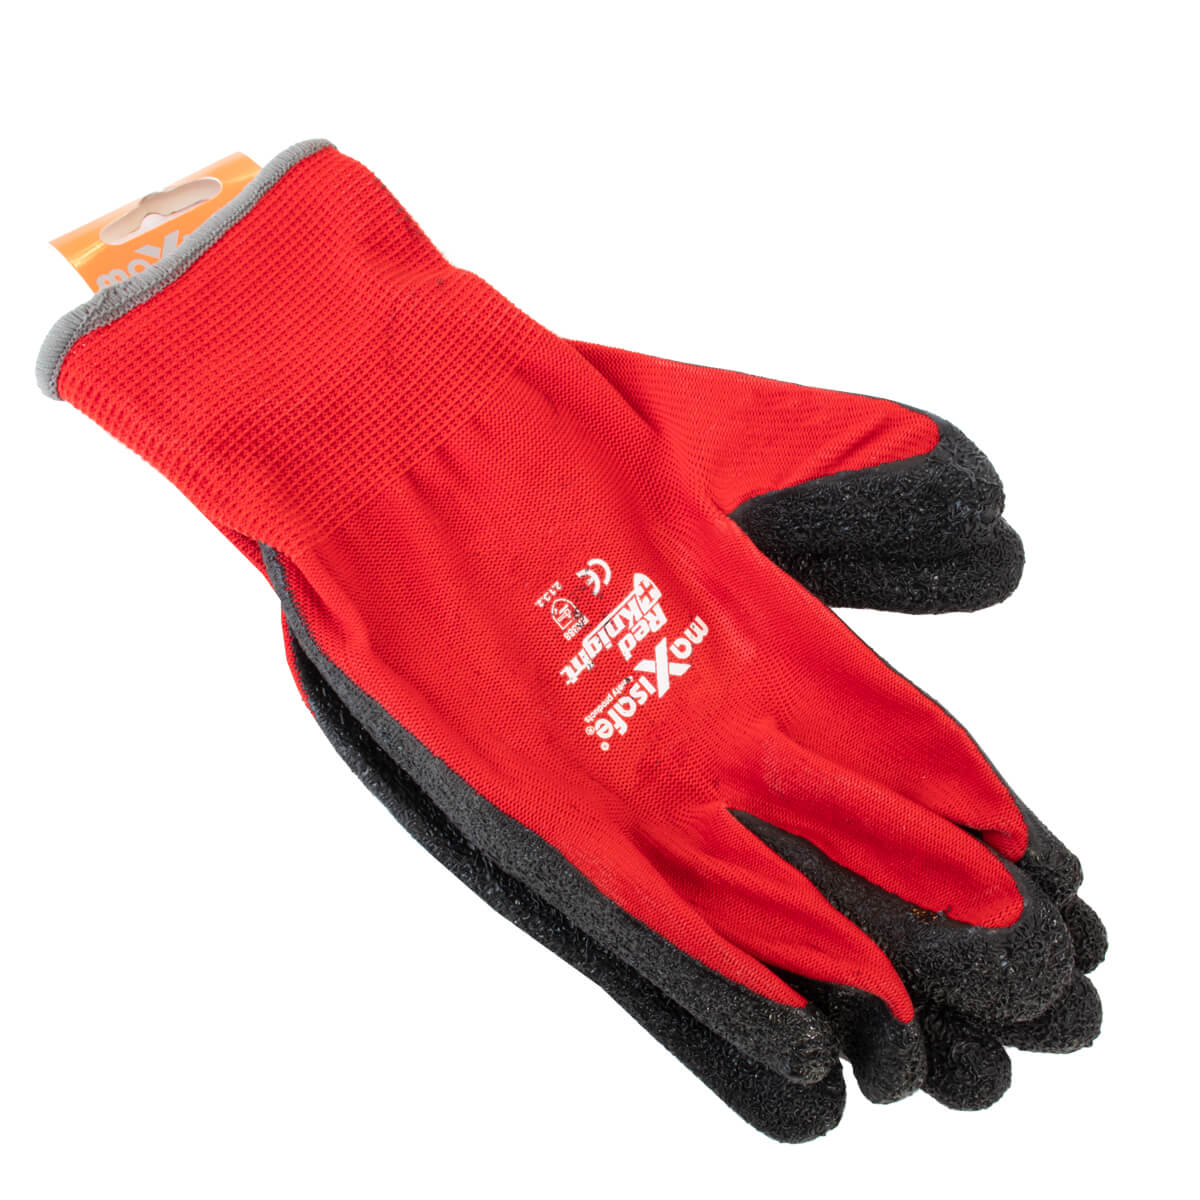 Gloves Latex Large MaxiSafe